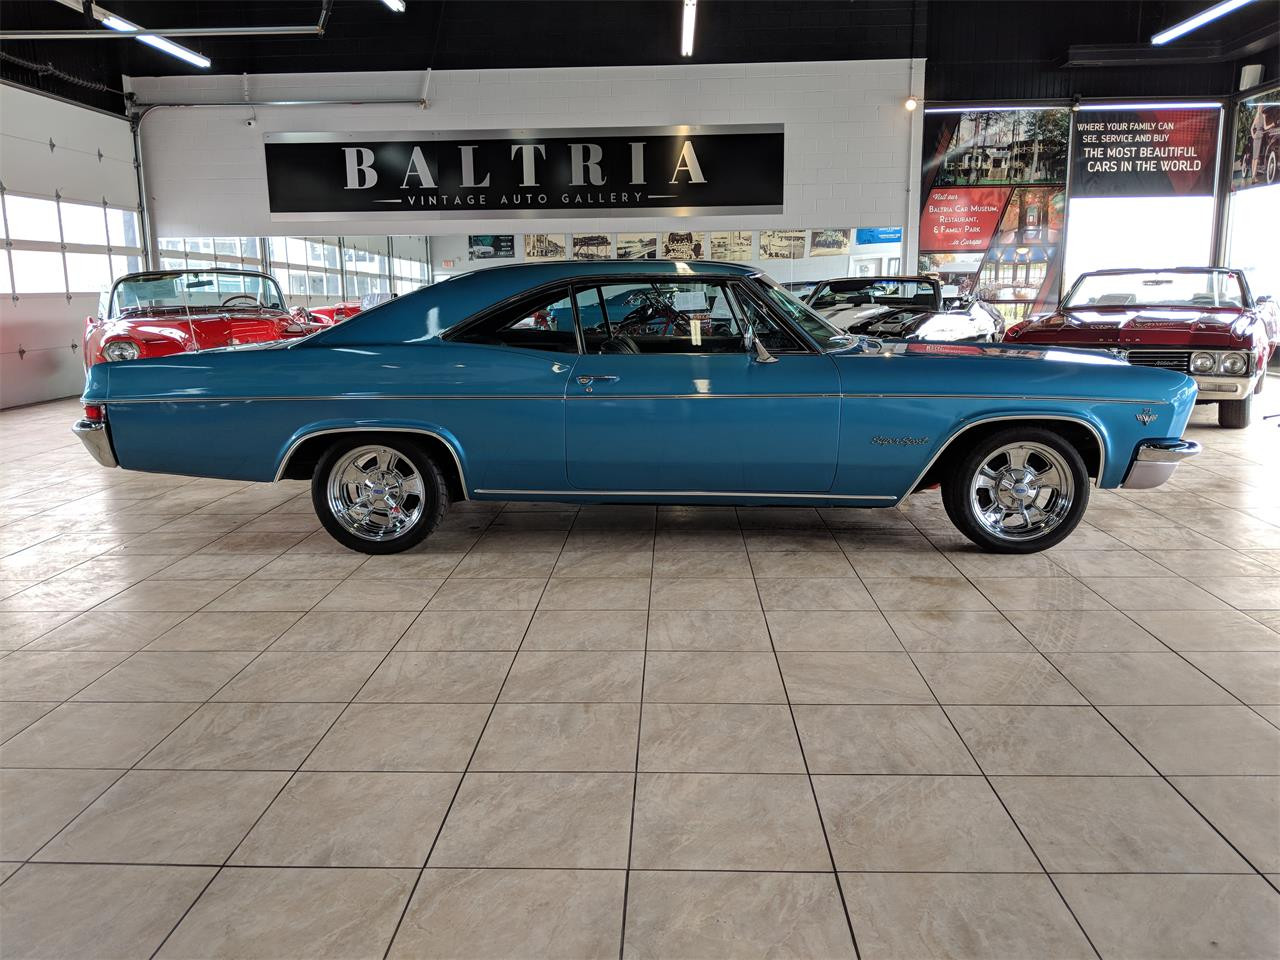 Large Picture of Classic '66 Chevrolet Impala SS located in Illinois - $32,900.00 - N62W